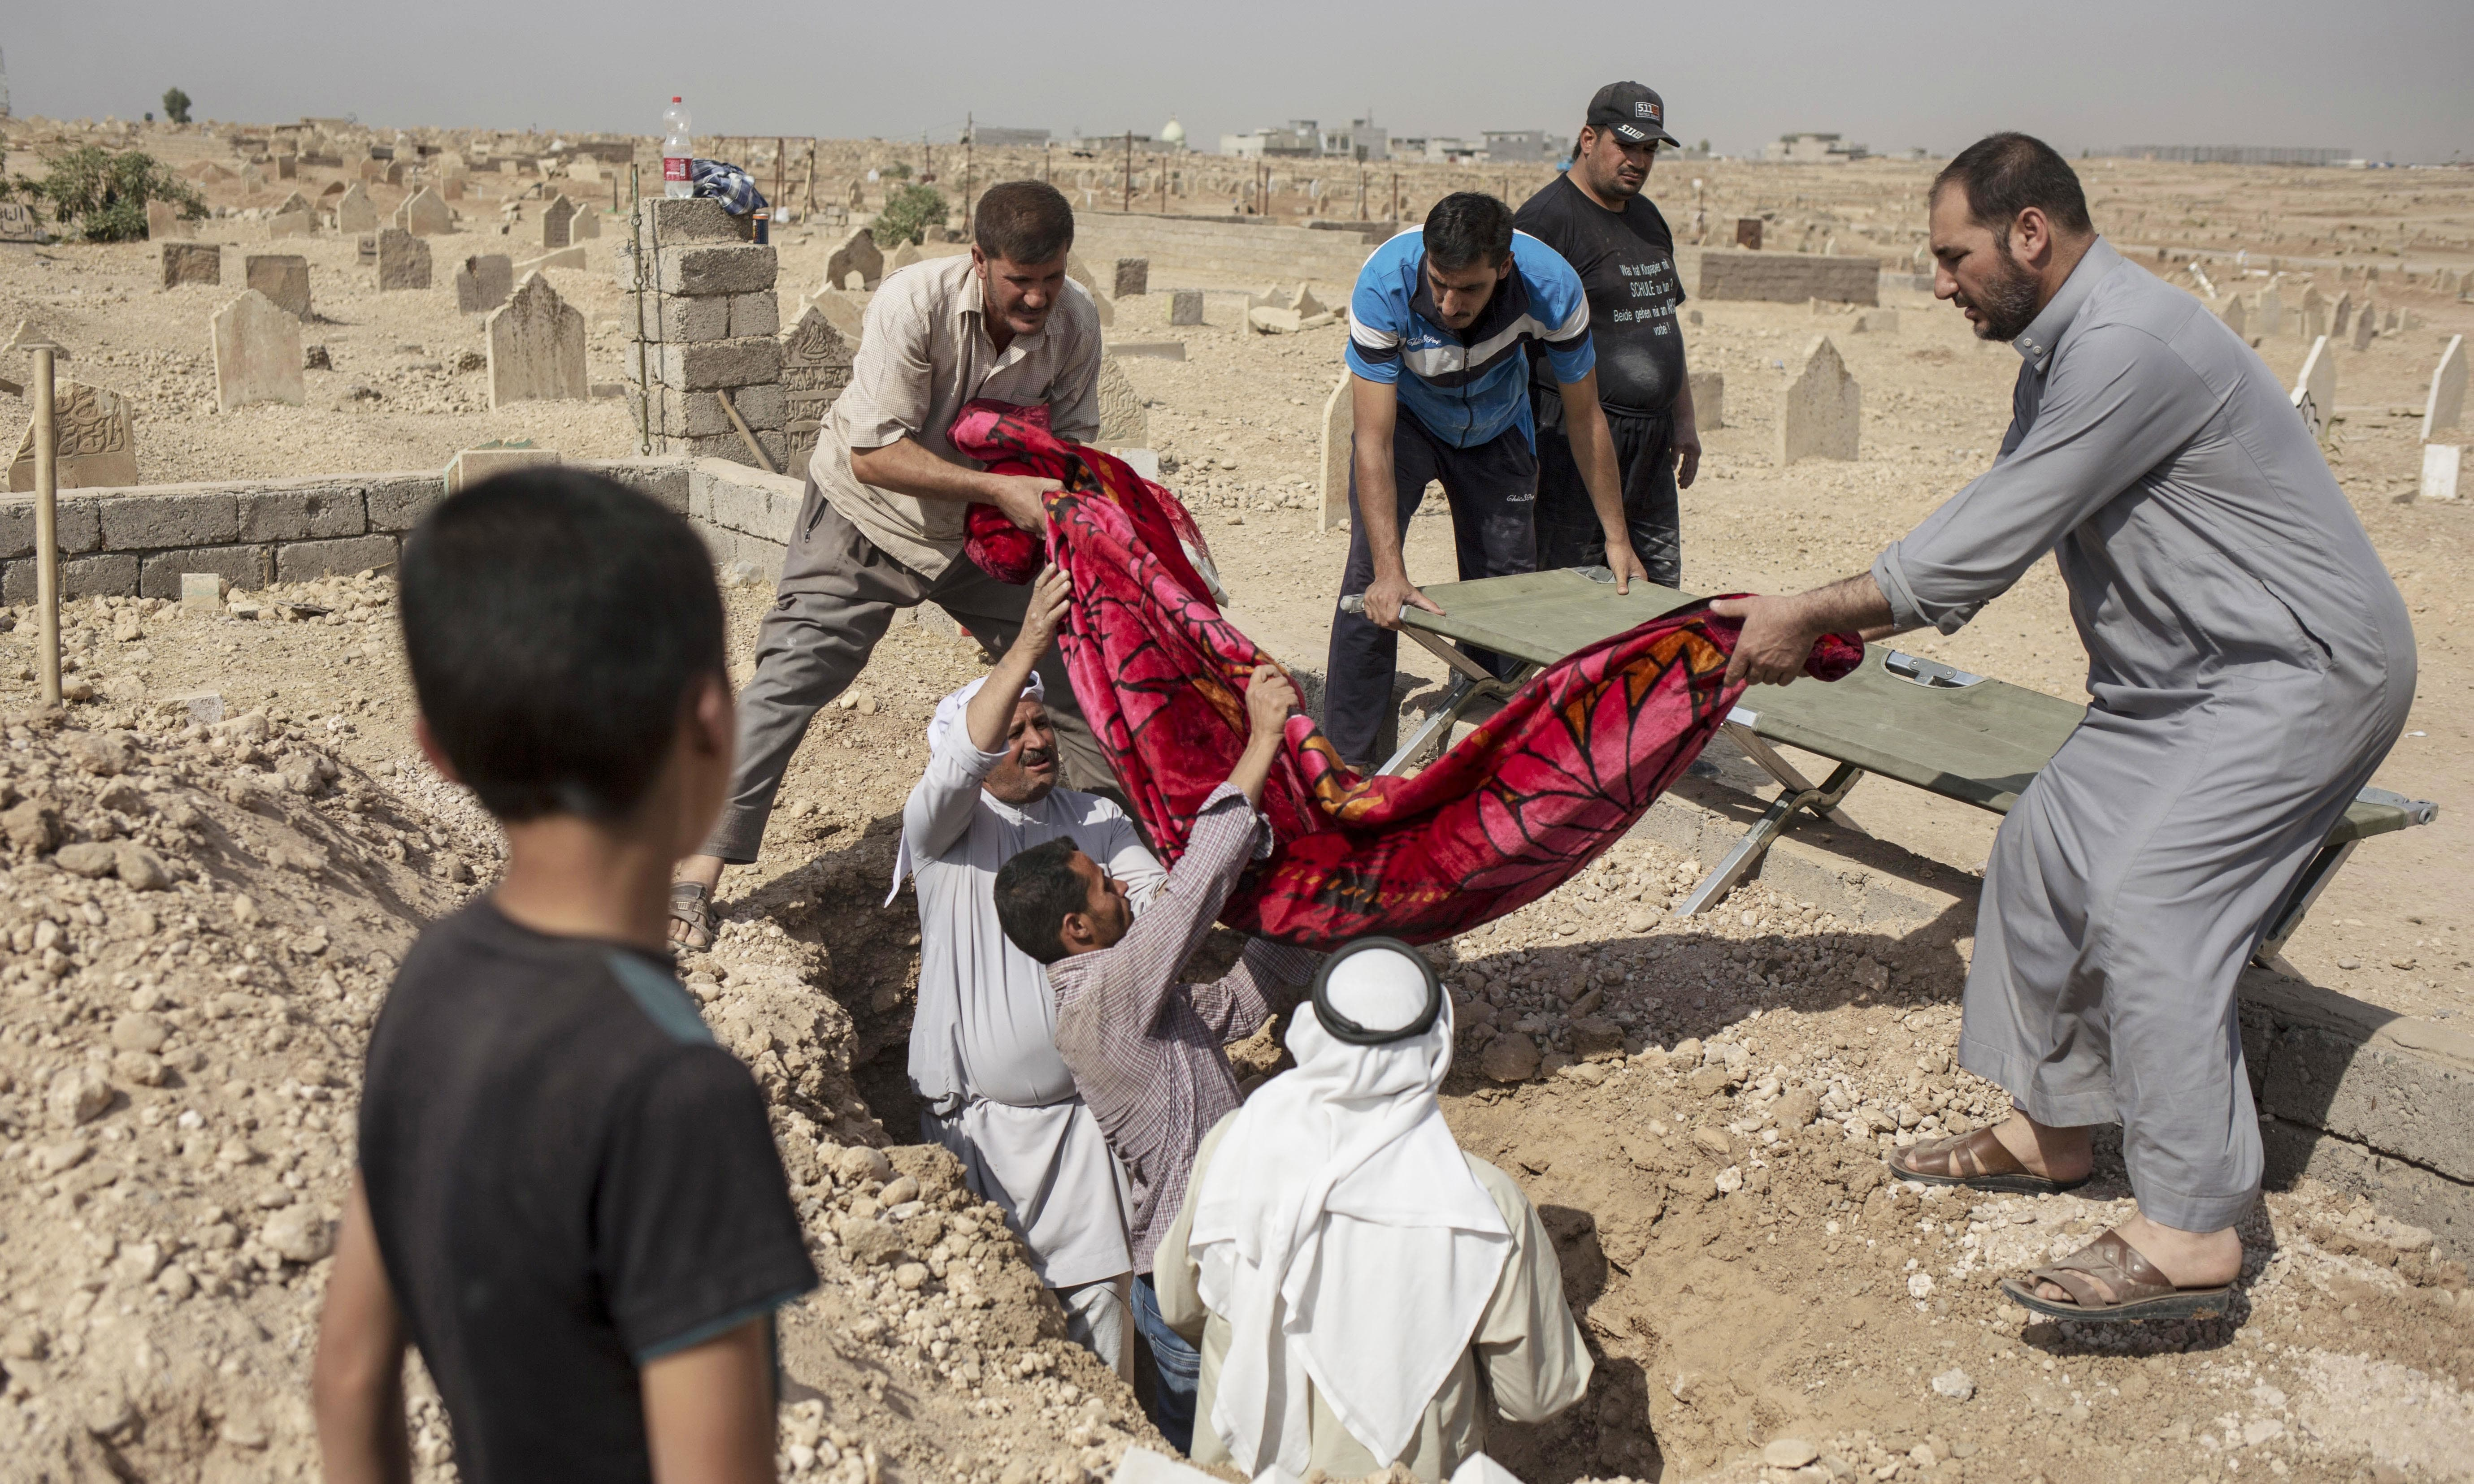 Relatives bury the body of 15-year-old Sana Younes at a graveyard in Mosul. Under Iraqi law, Mosul residents have to exhume the bodies of their relatives in order to receive a death certificate from the government, after which the remains are reburied. —AP